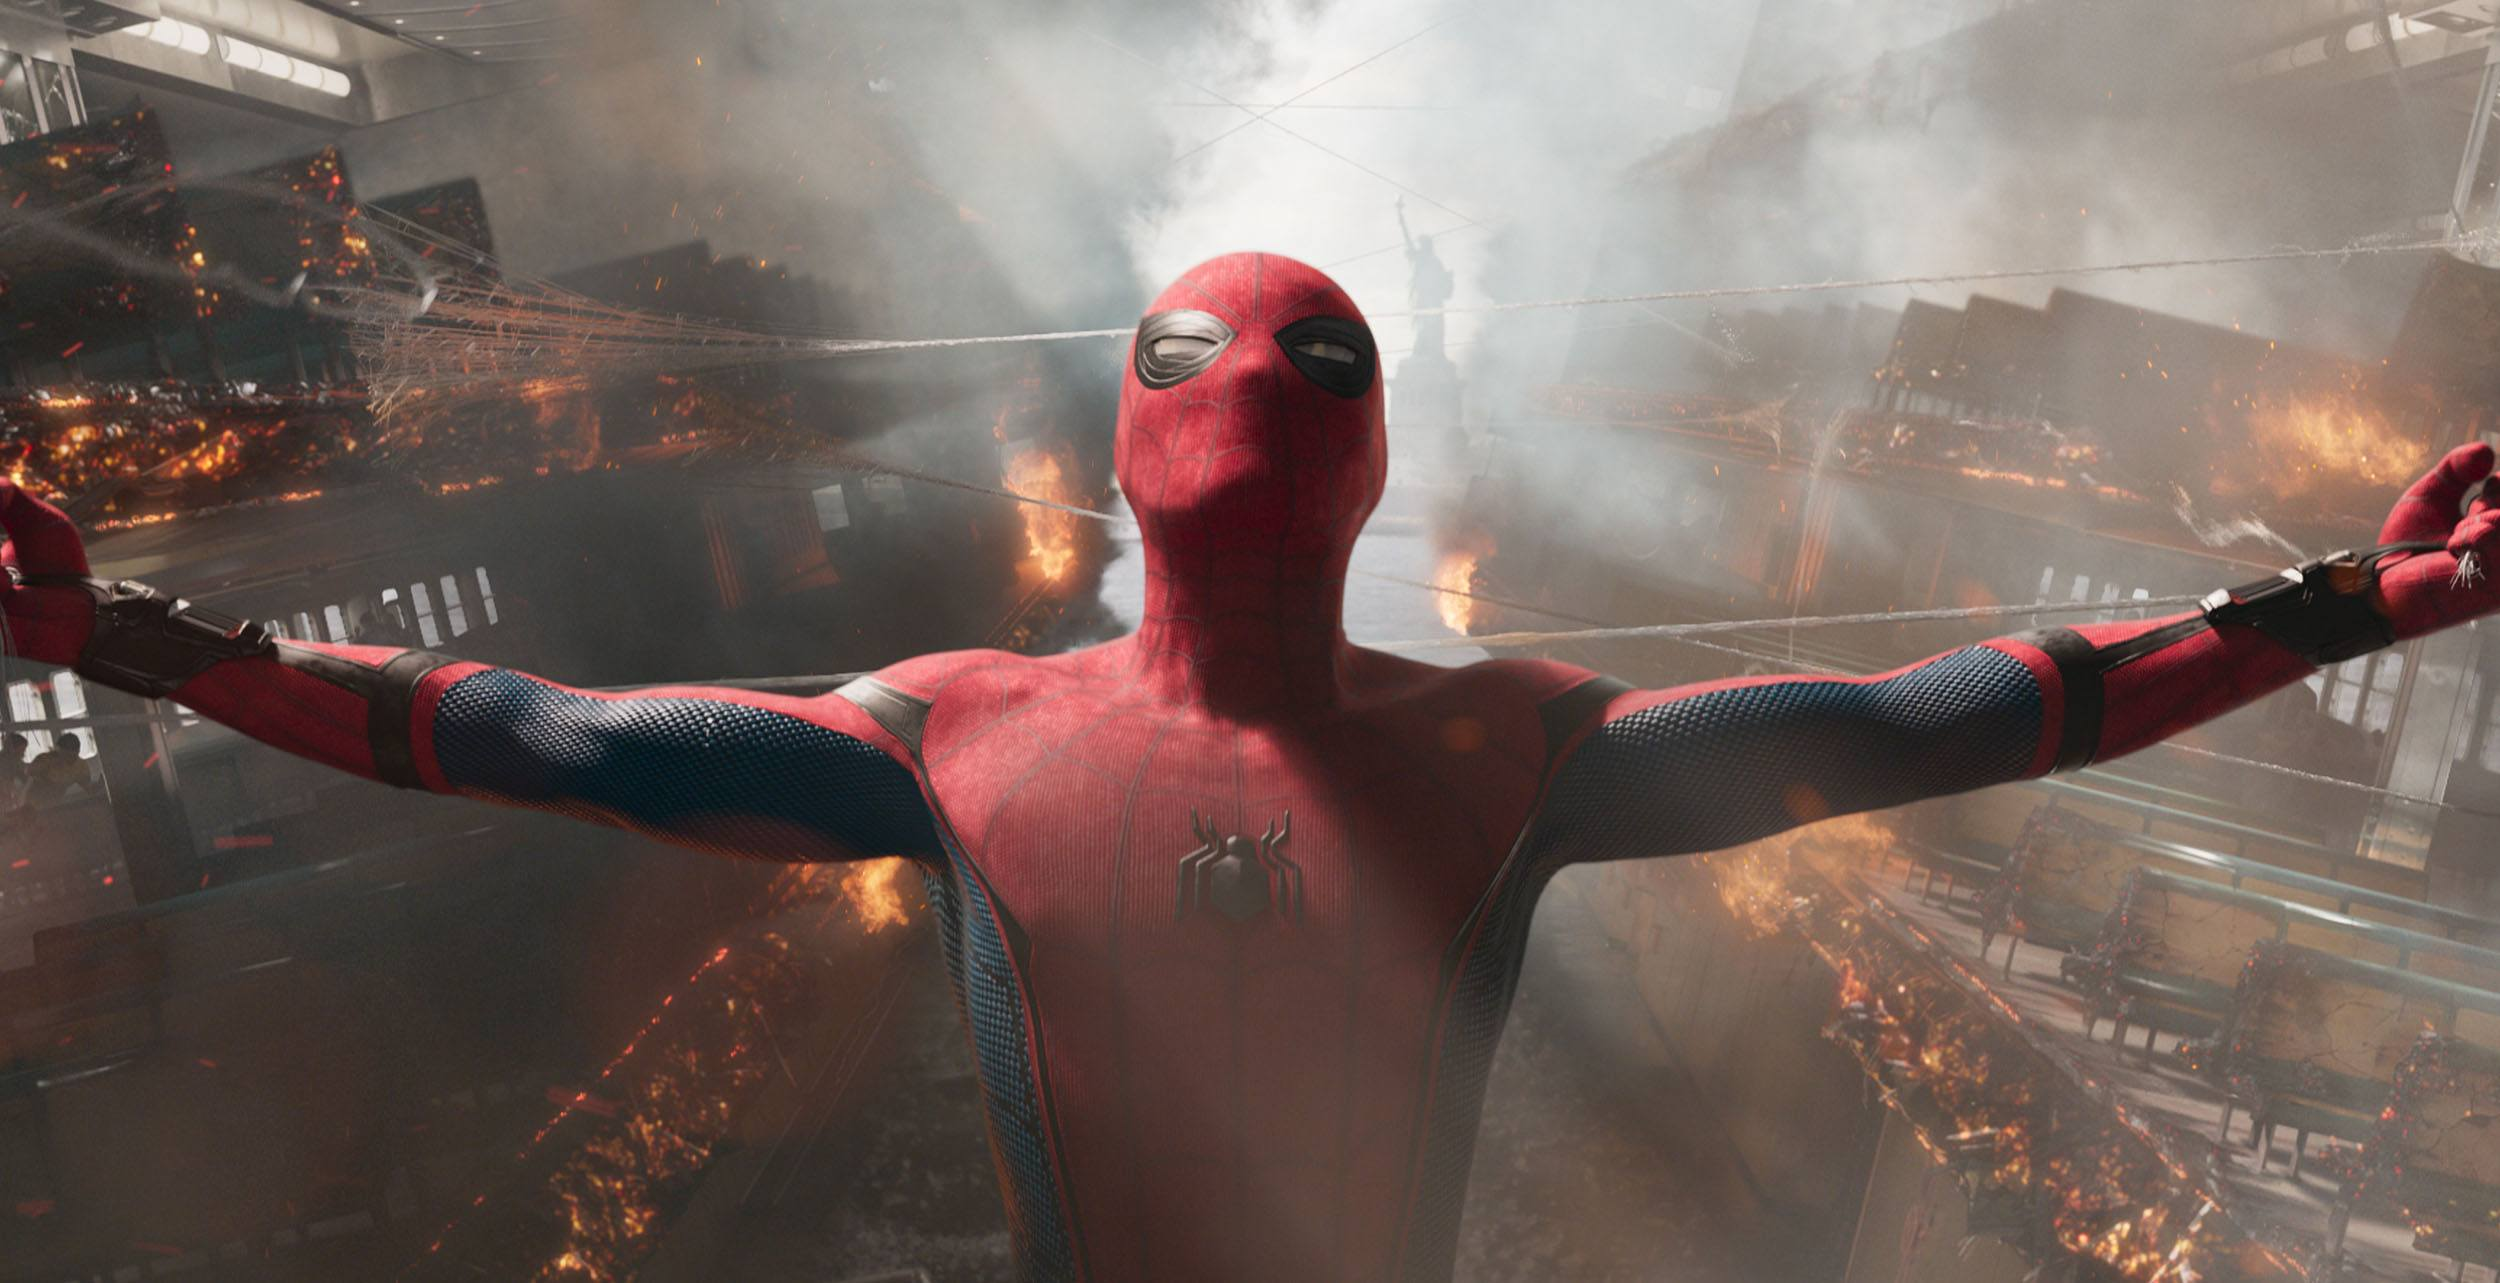 Spider-Man: Homecoming visual effects proudly made in Vancouver (PHOTOS)